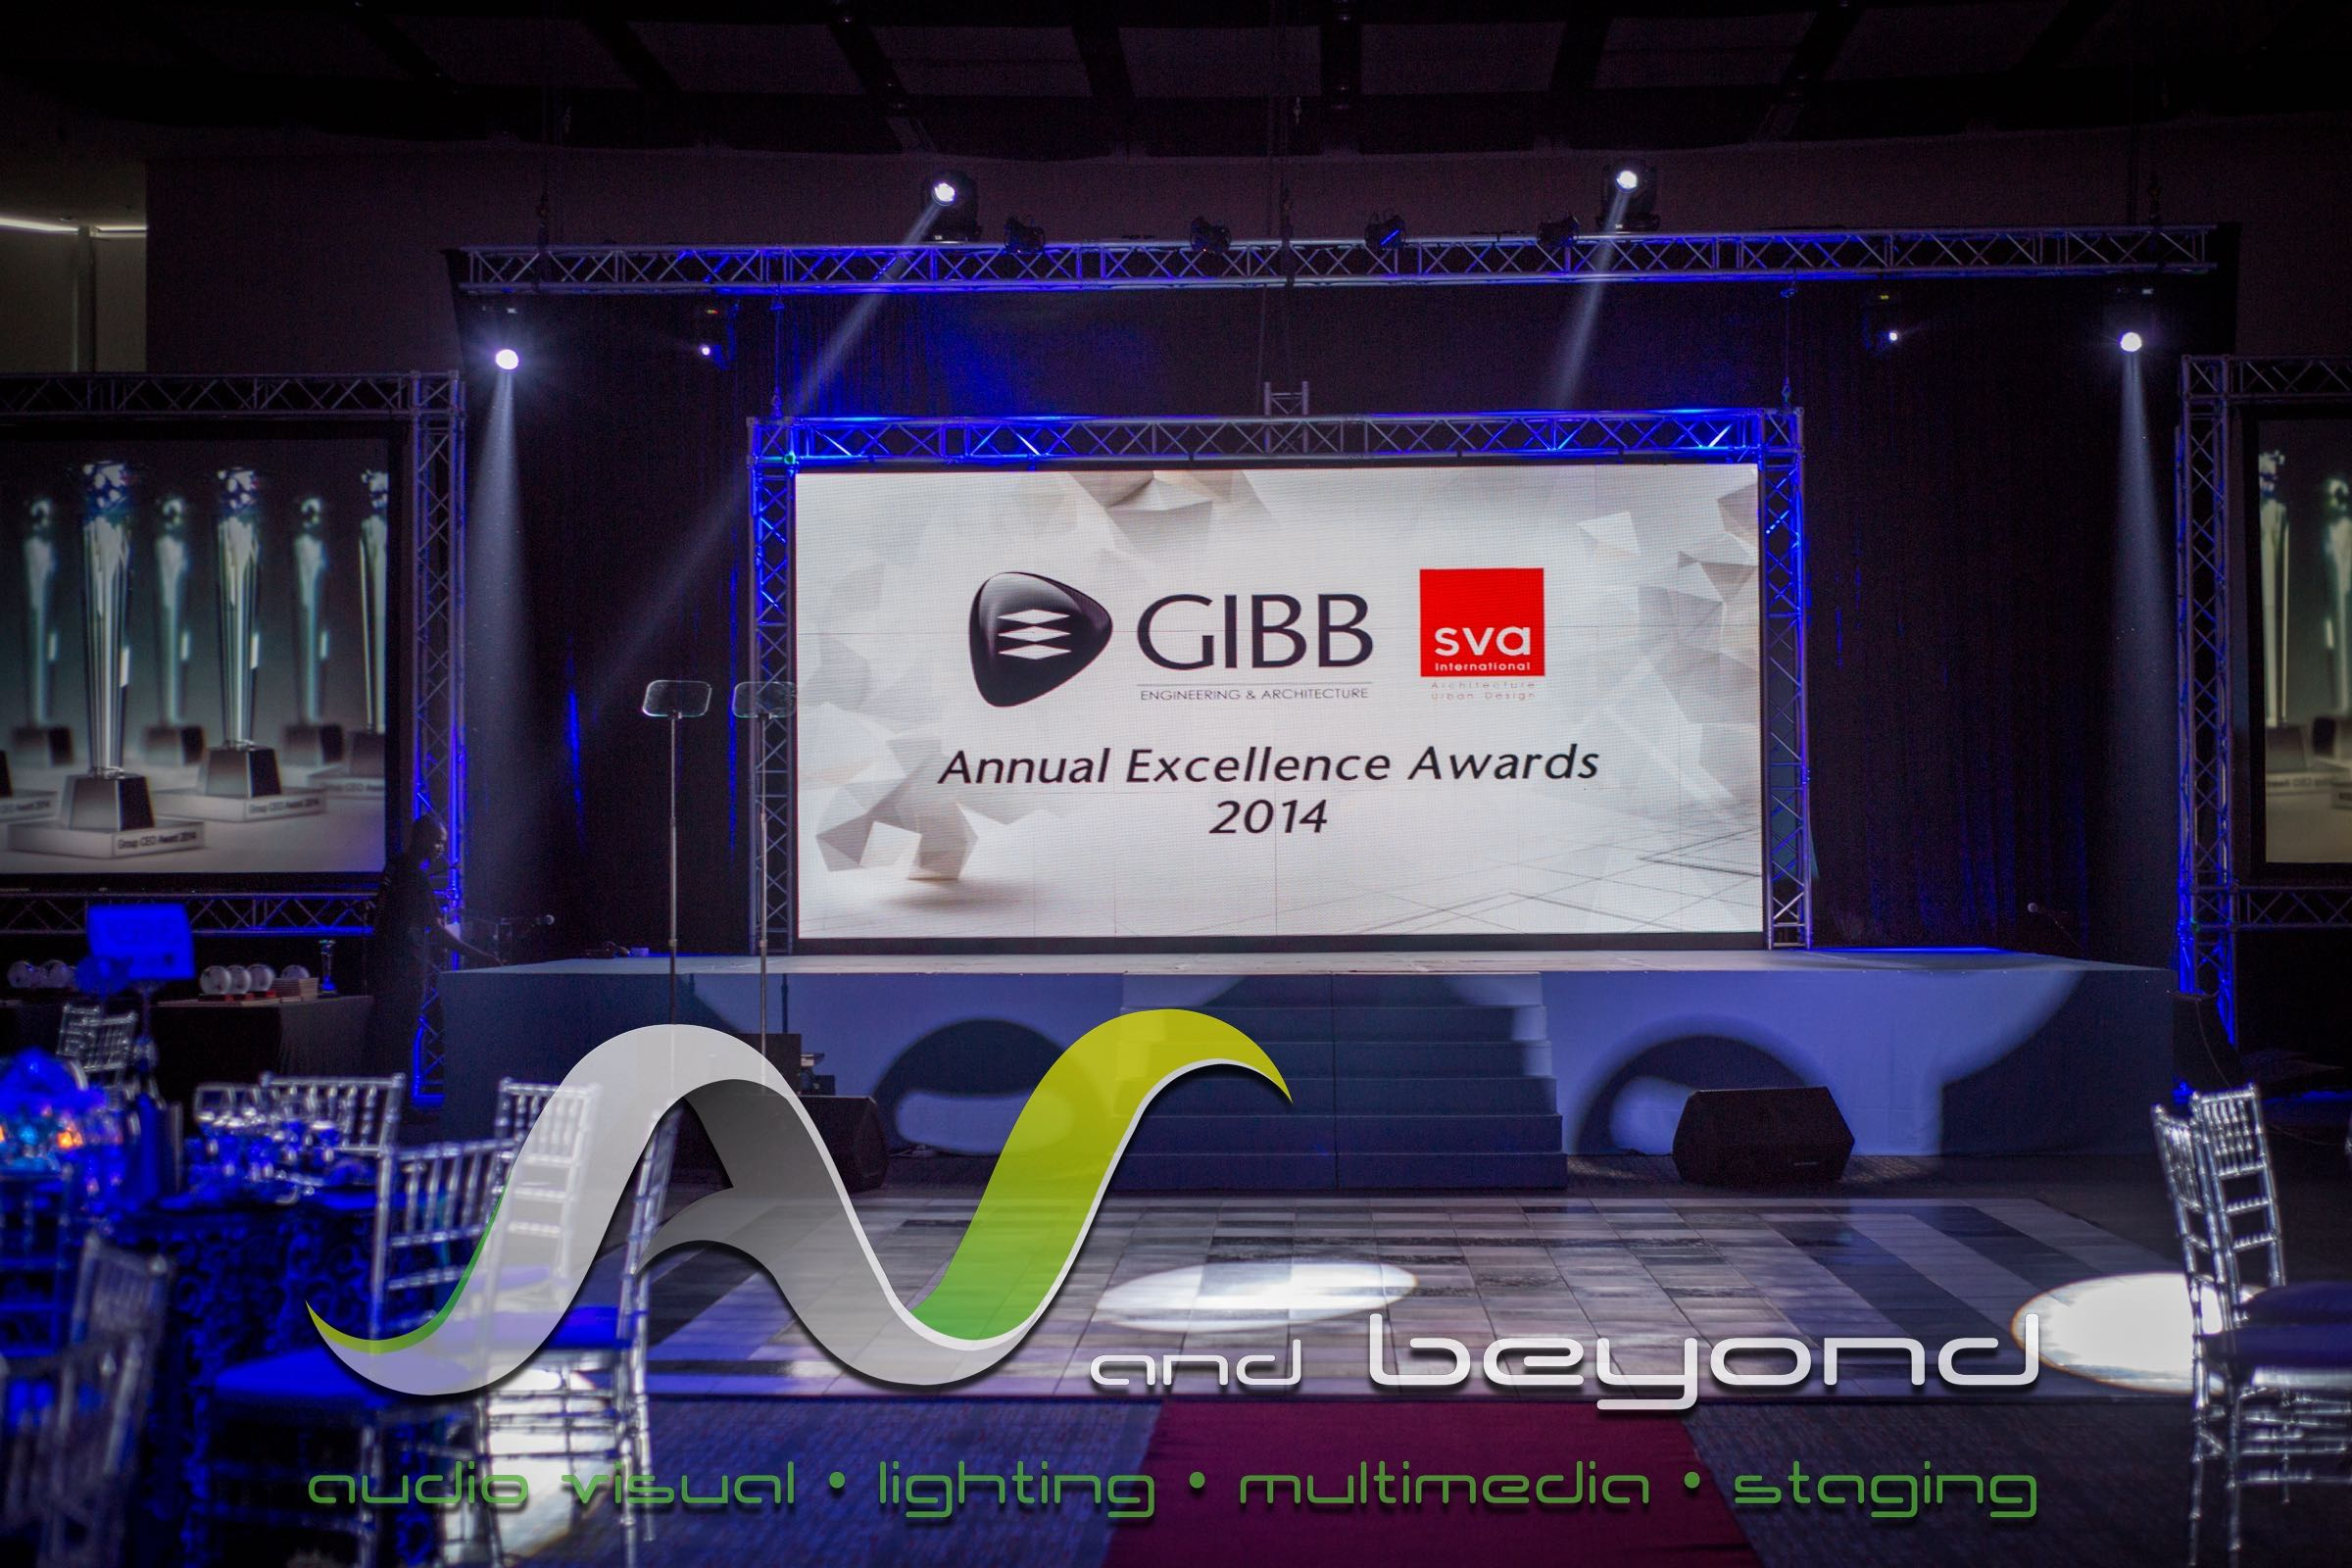 GIBB Excellence Awards 2014-141108-LRG-33.jpg